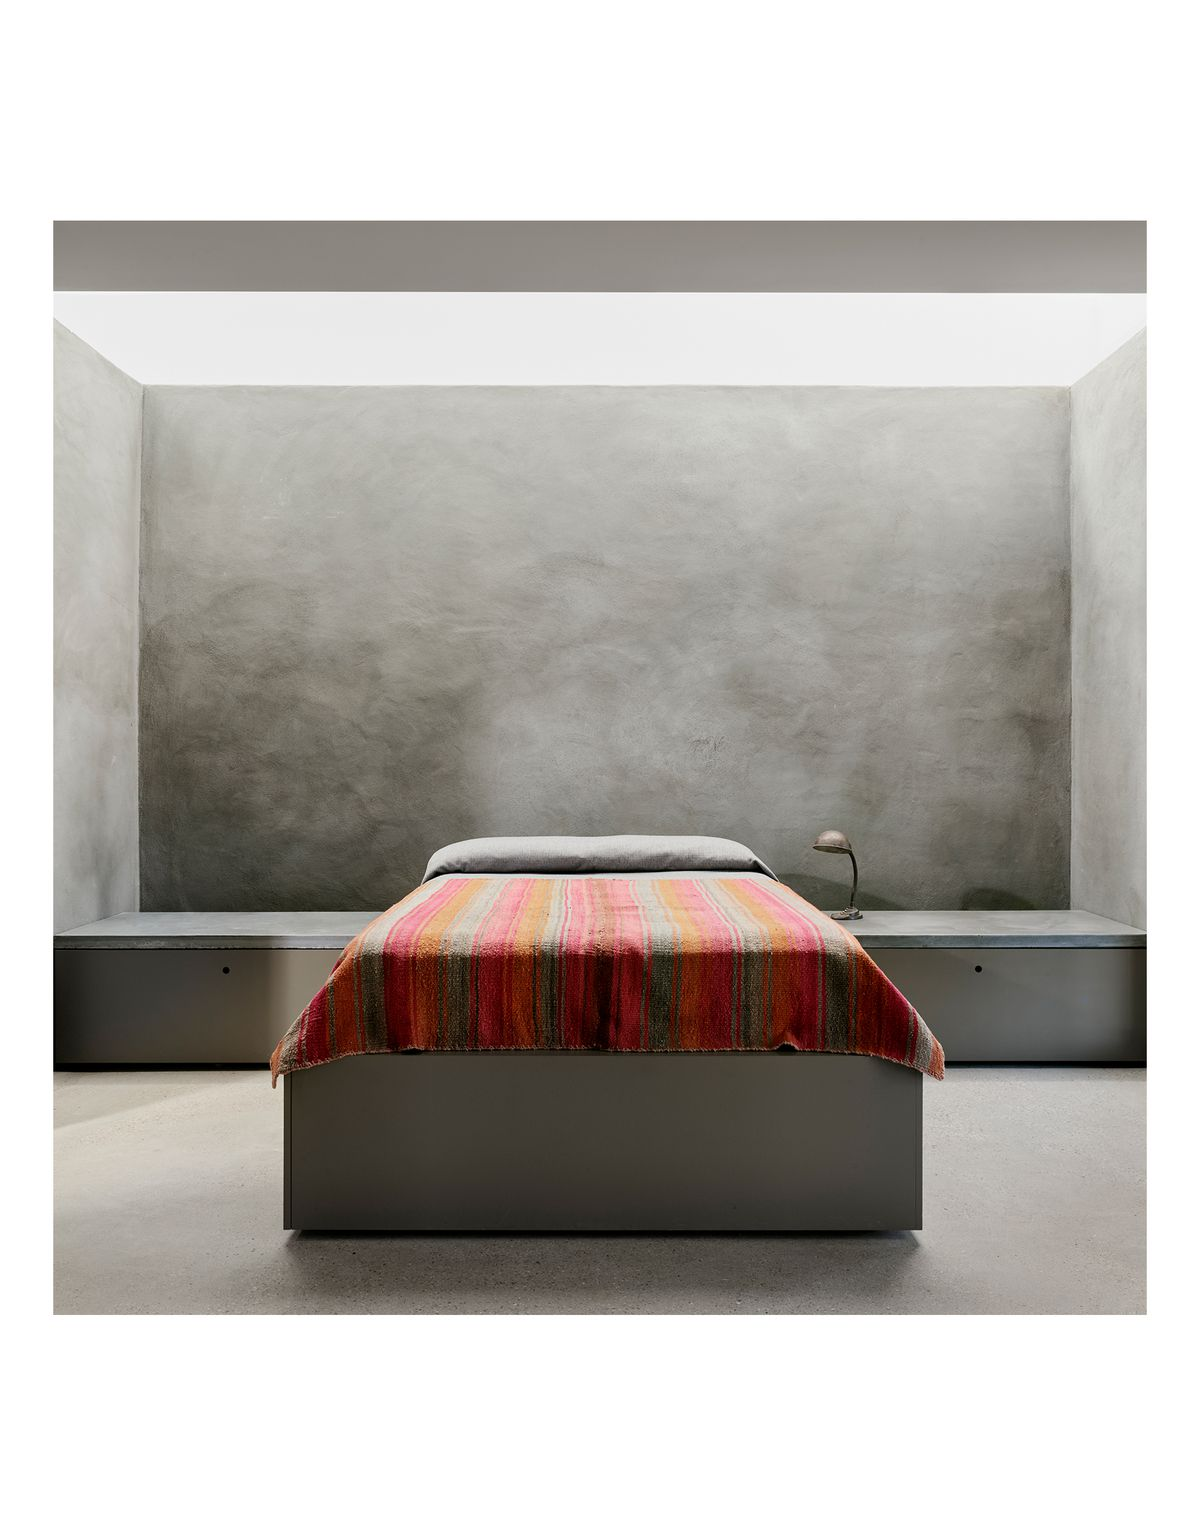 A red and brown blanket on the bed makes a bright spot of color in the neutral environment.